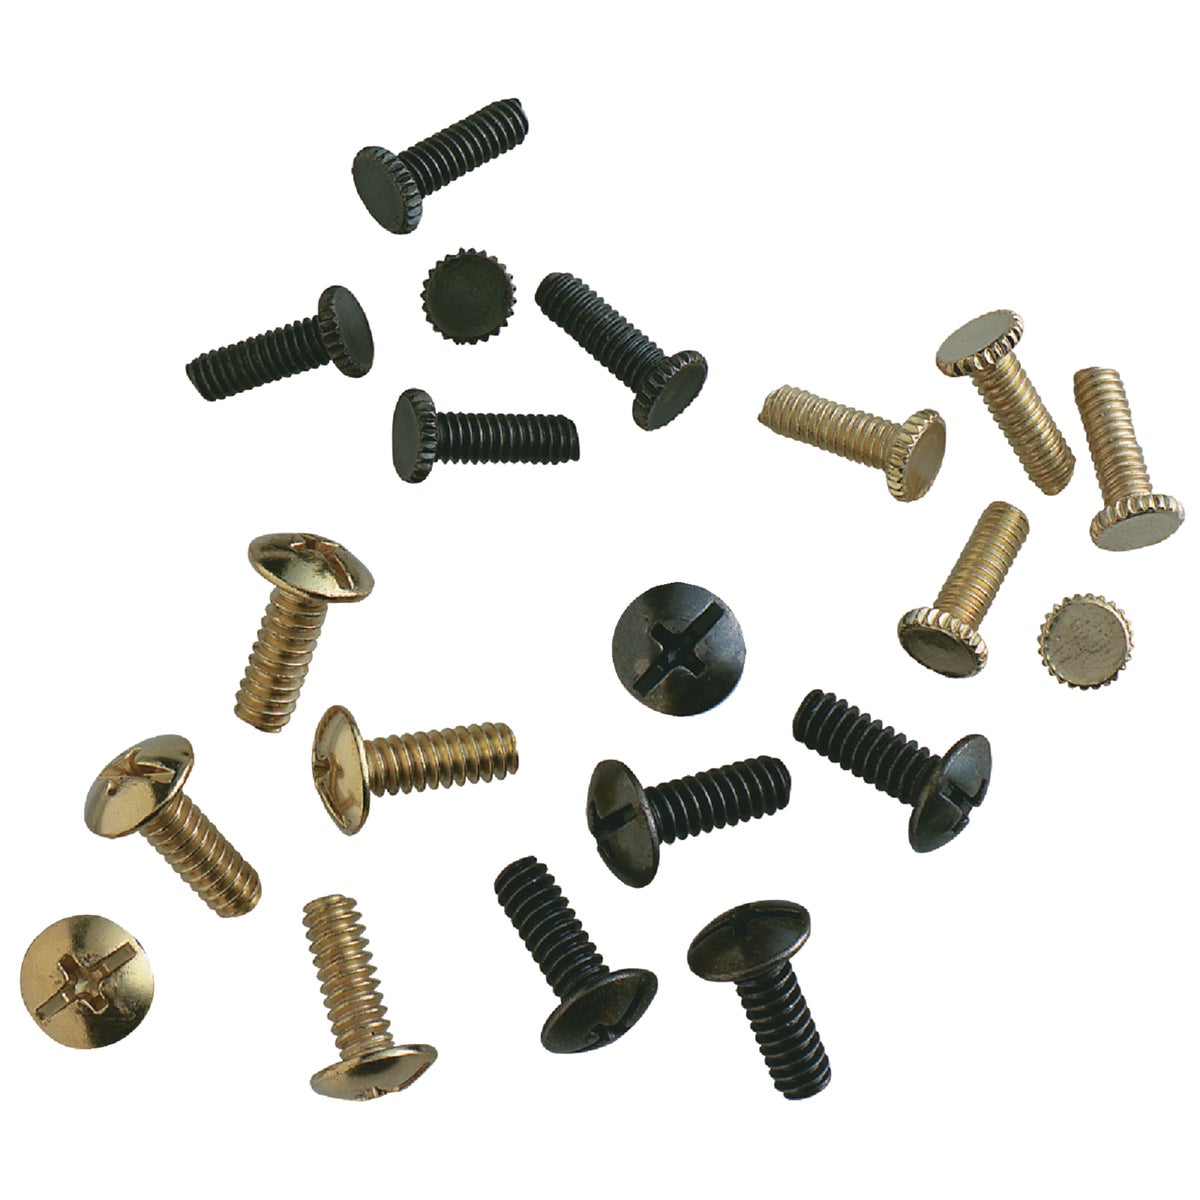 ASTD FAN SCREWS - 77016 by Westinghouse Lightng